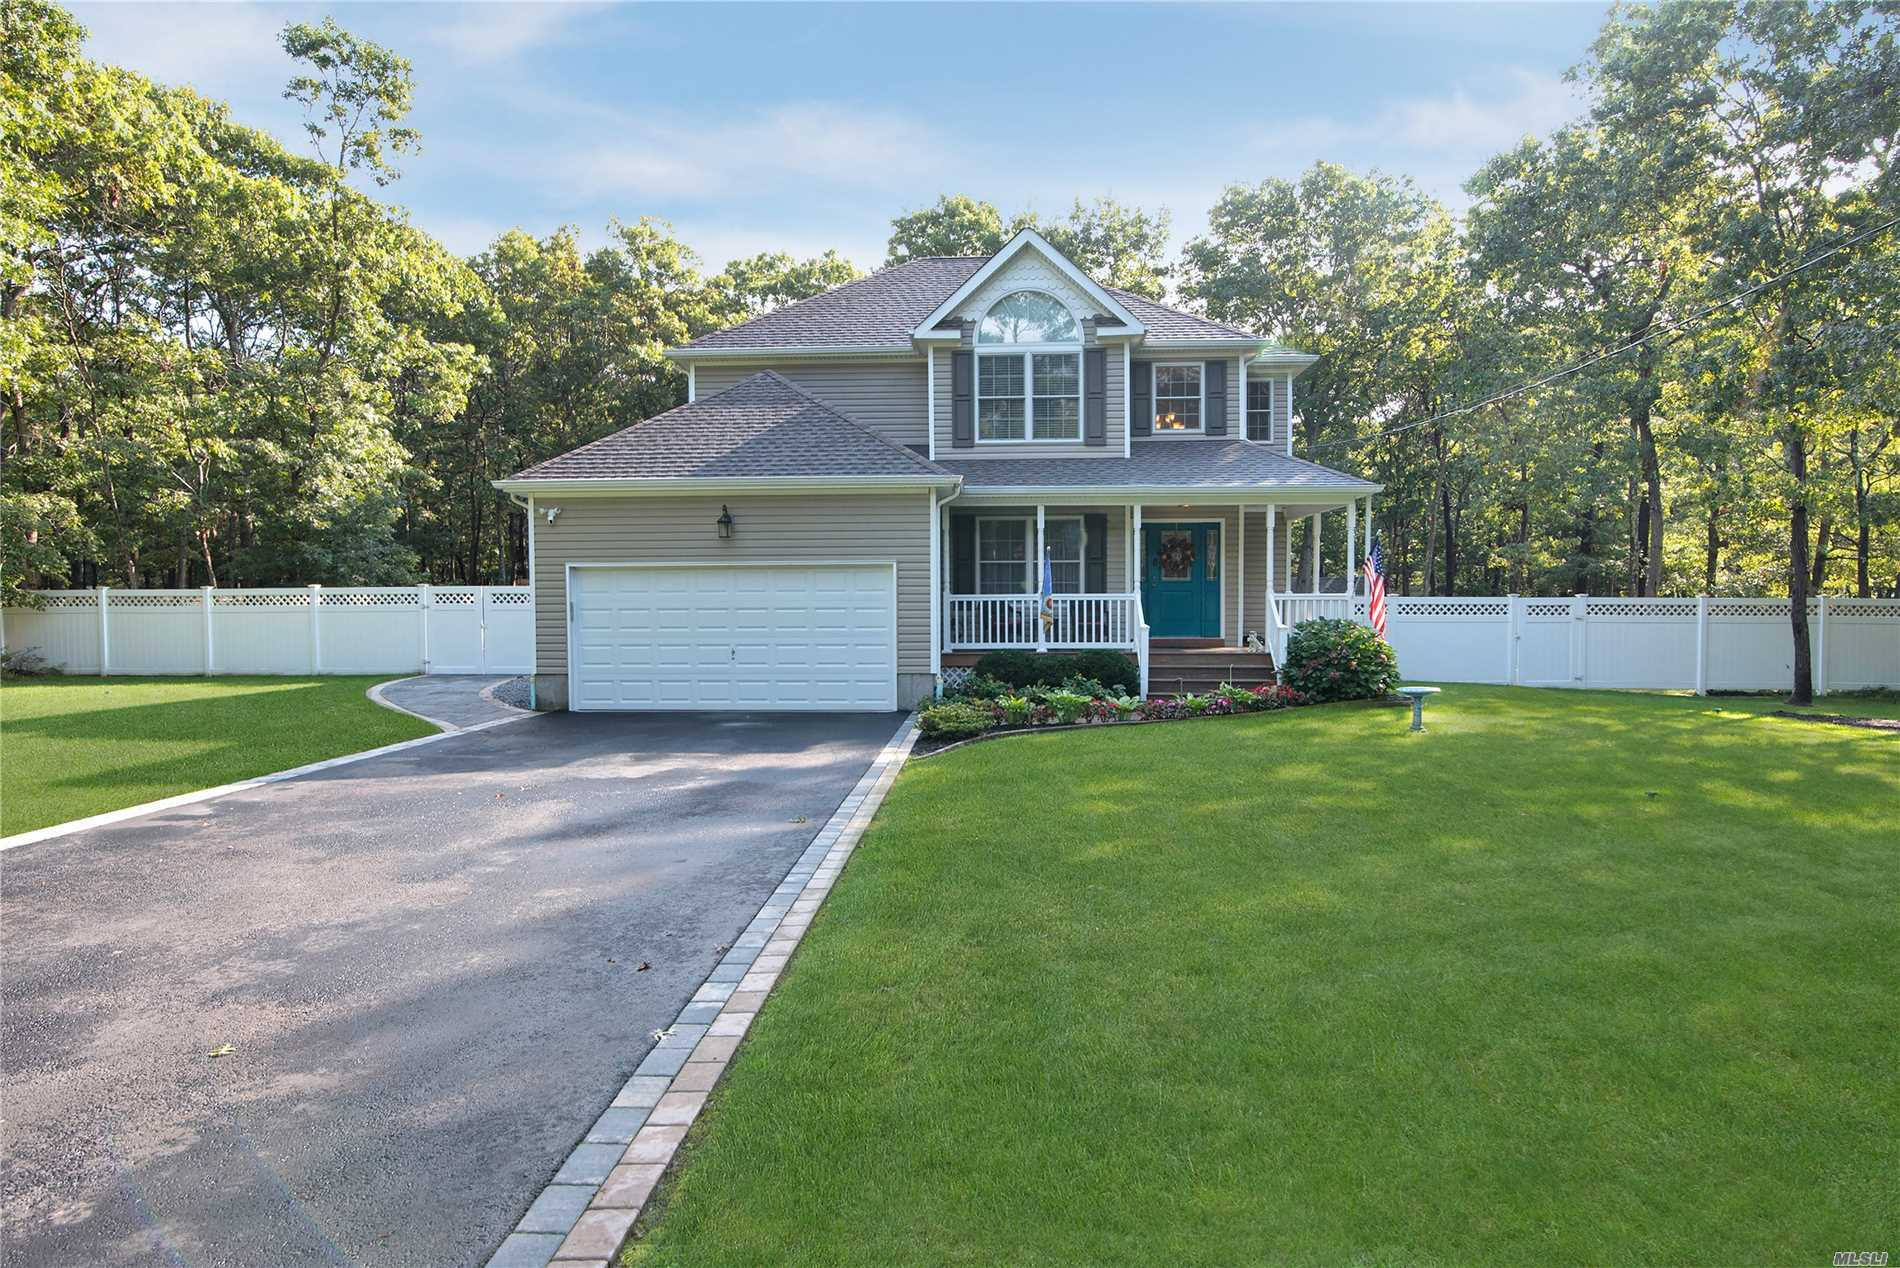 15 N Trainor Dr - Manorville, New York